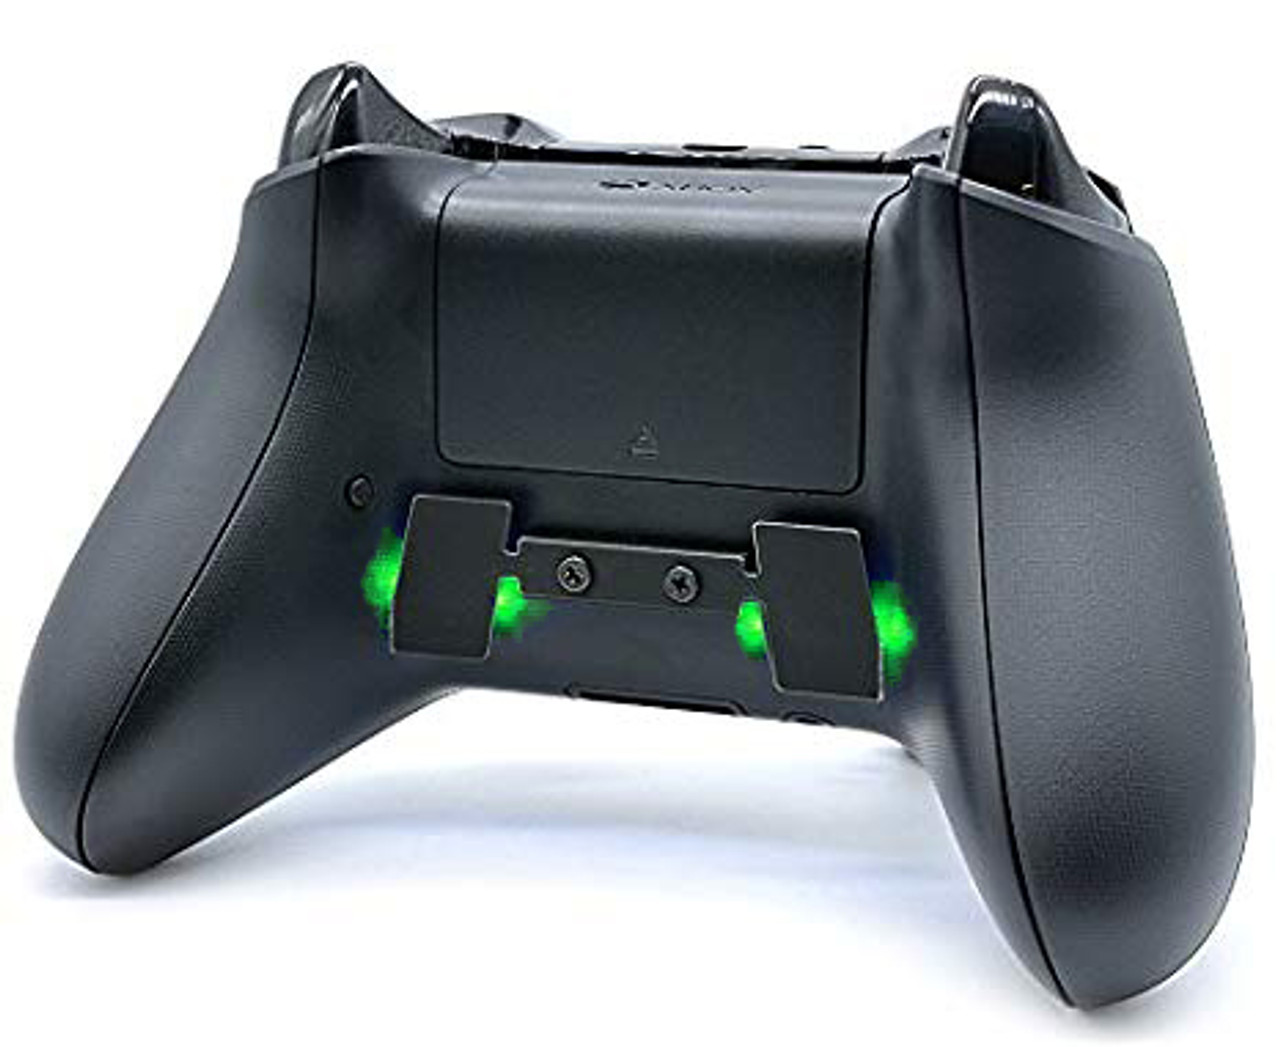 Xbox One controller with 2 button paddle and green LEDs